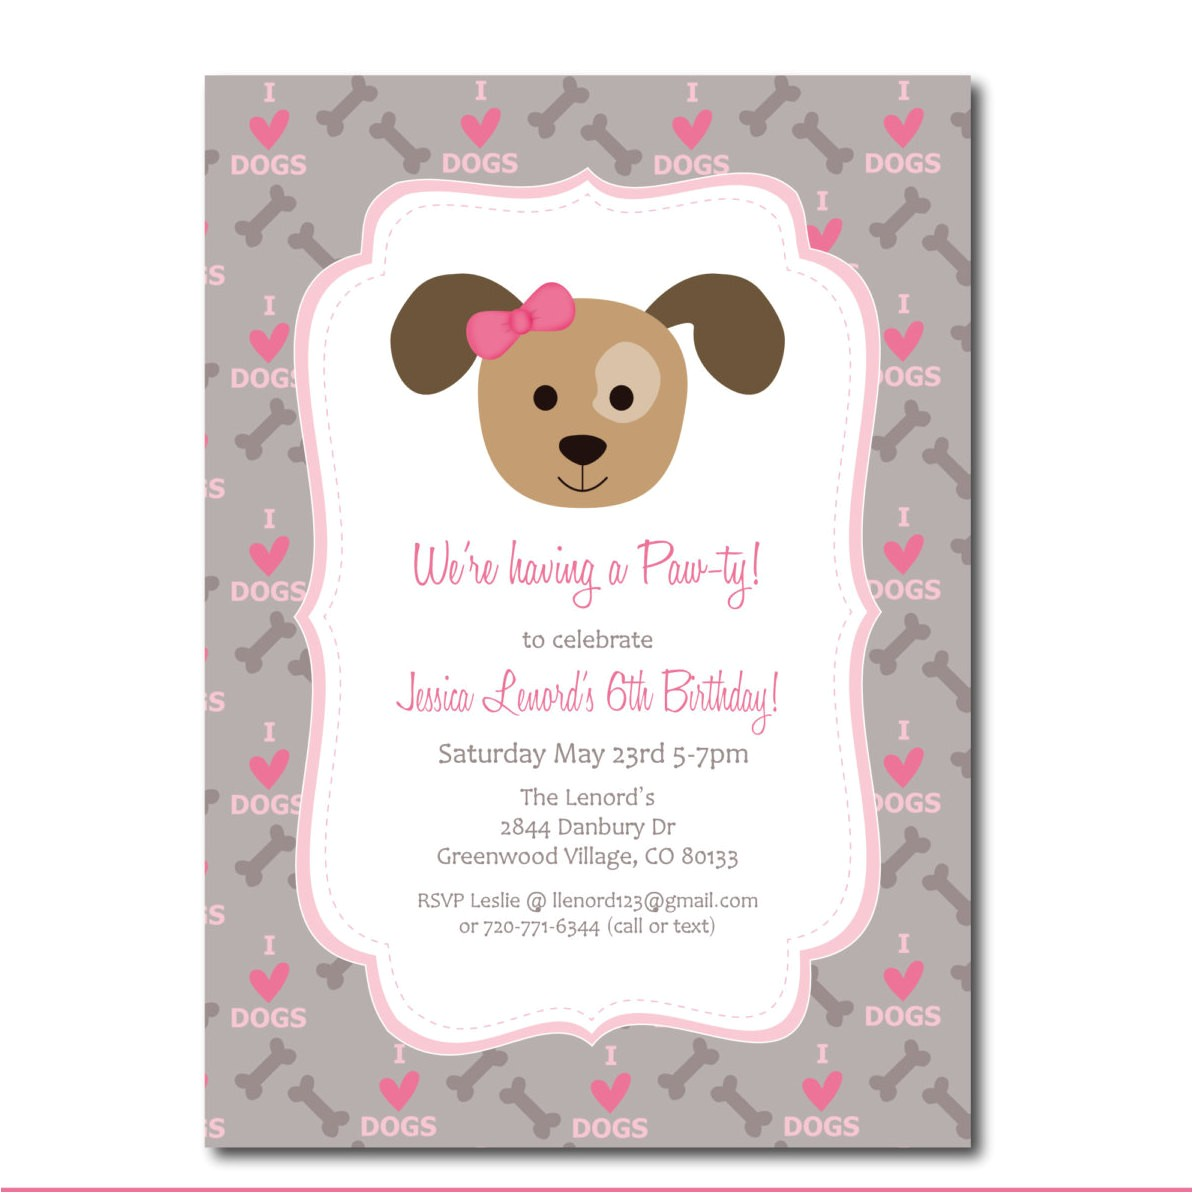 Puppy Party Invites Puppy Party Invitation with Editable Text Dog Party